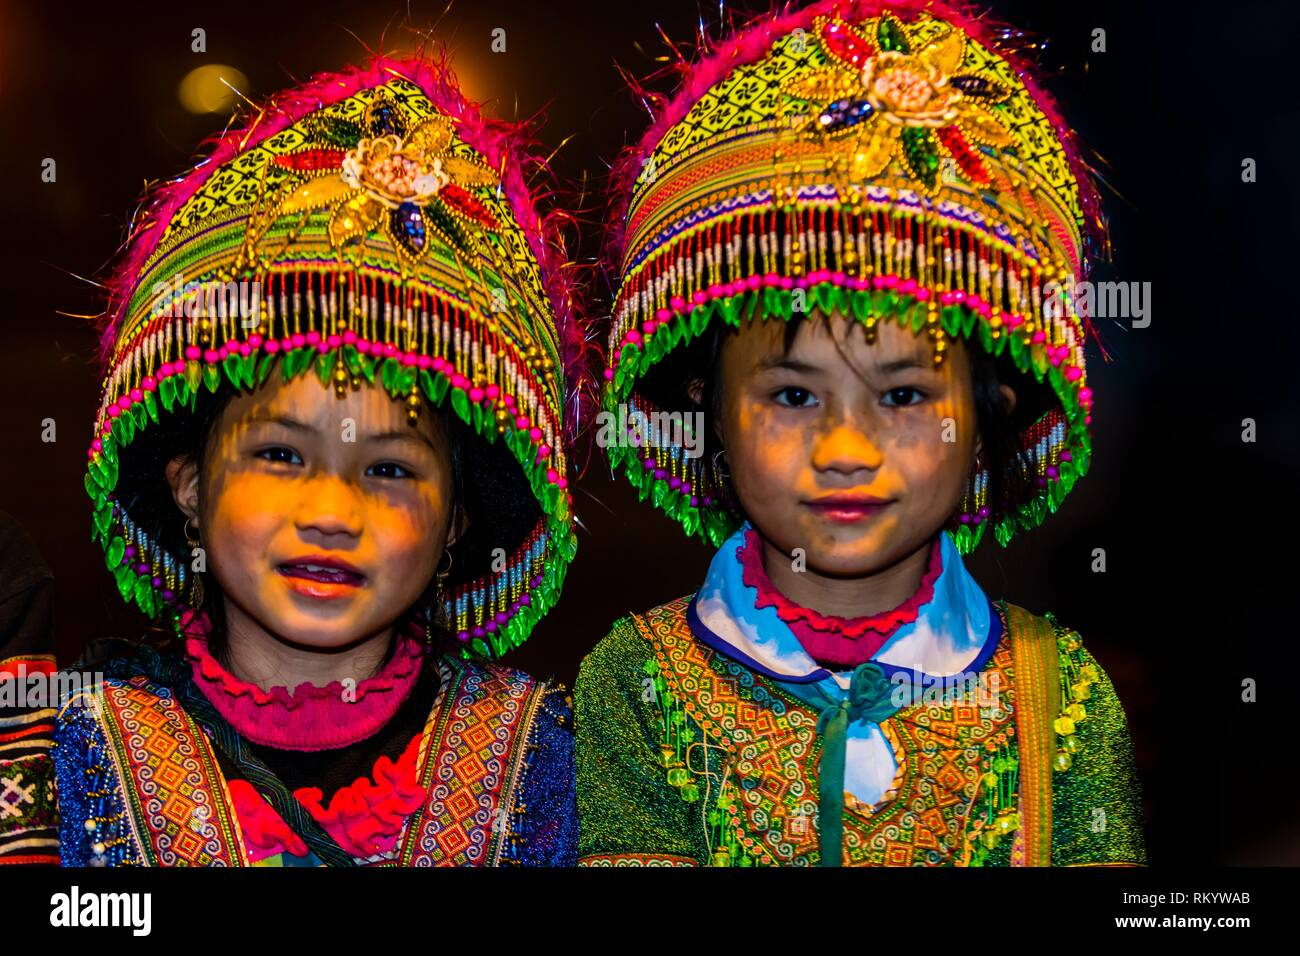 Flower Hmong (hill tribe) girls in traditional costume in Sapa, northern Vietnam. - Stock Image